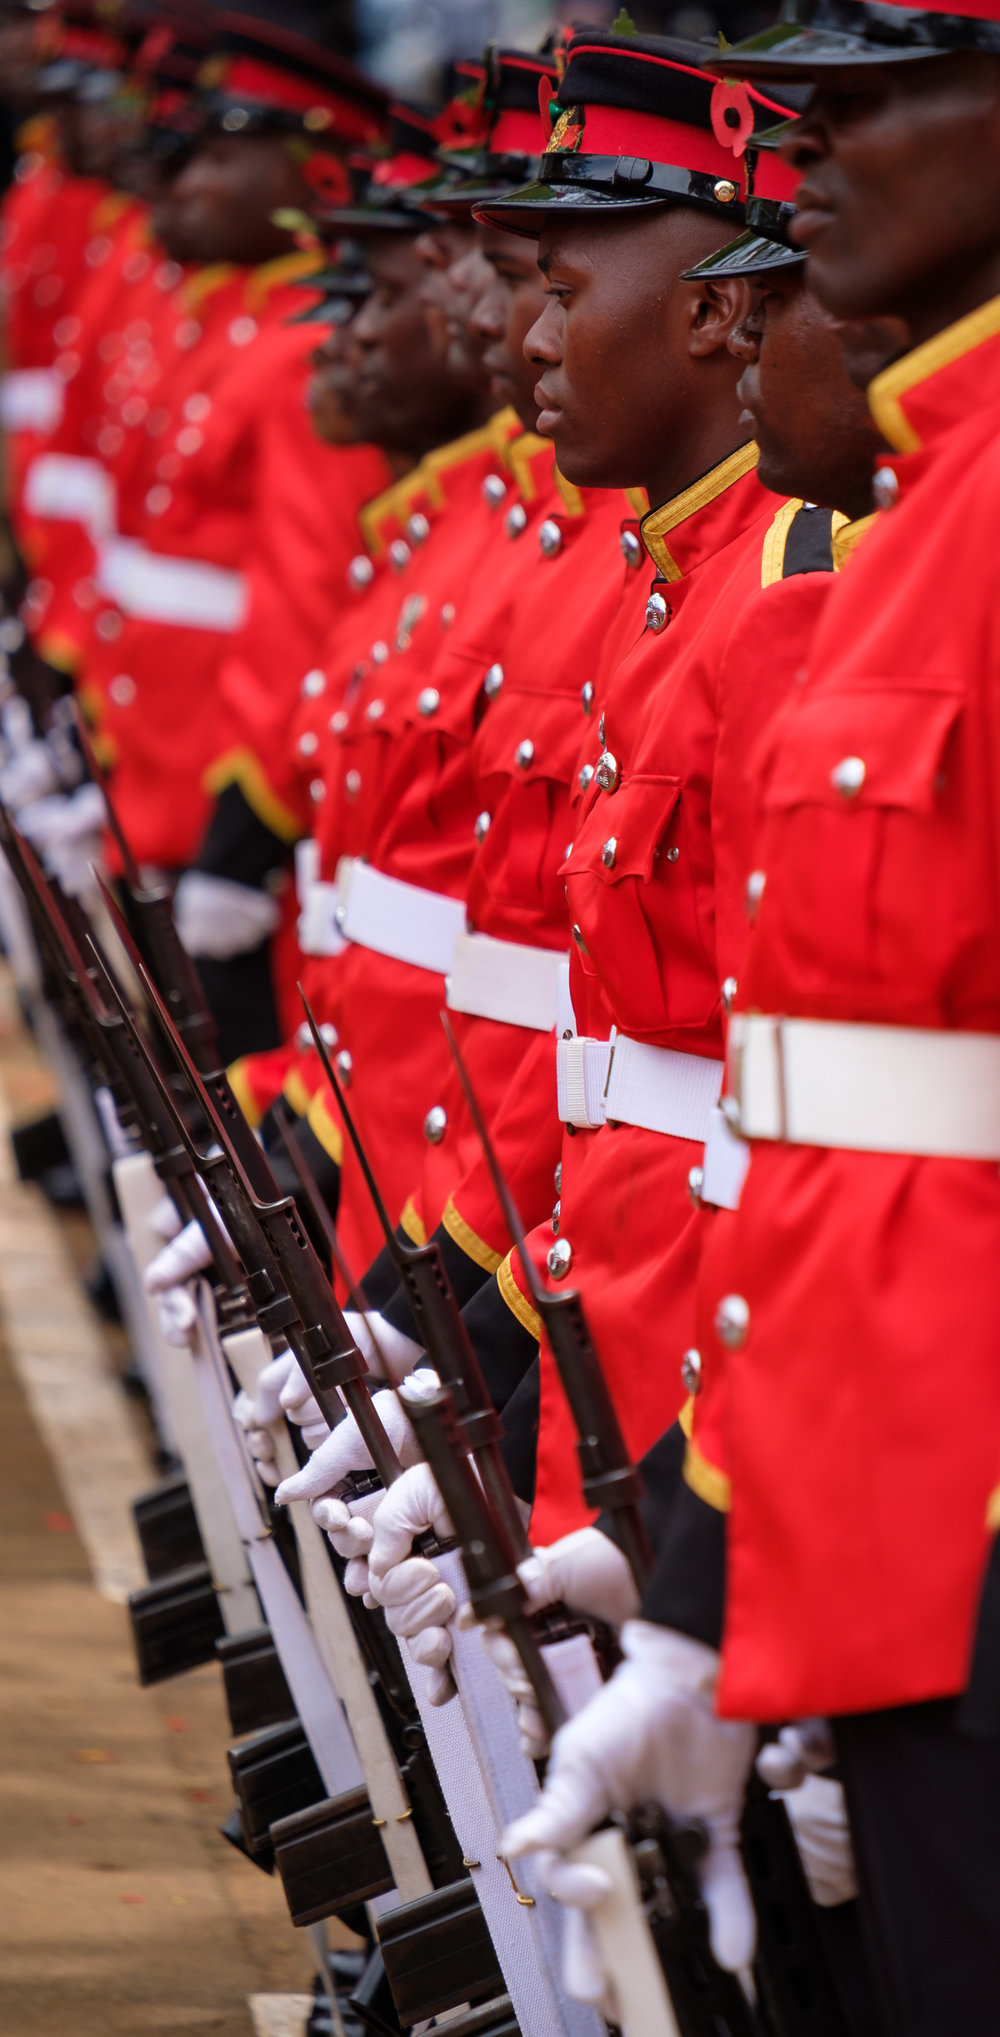 Dressed right dressed, the soldiers looked sharp in their dress uniforms.